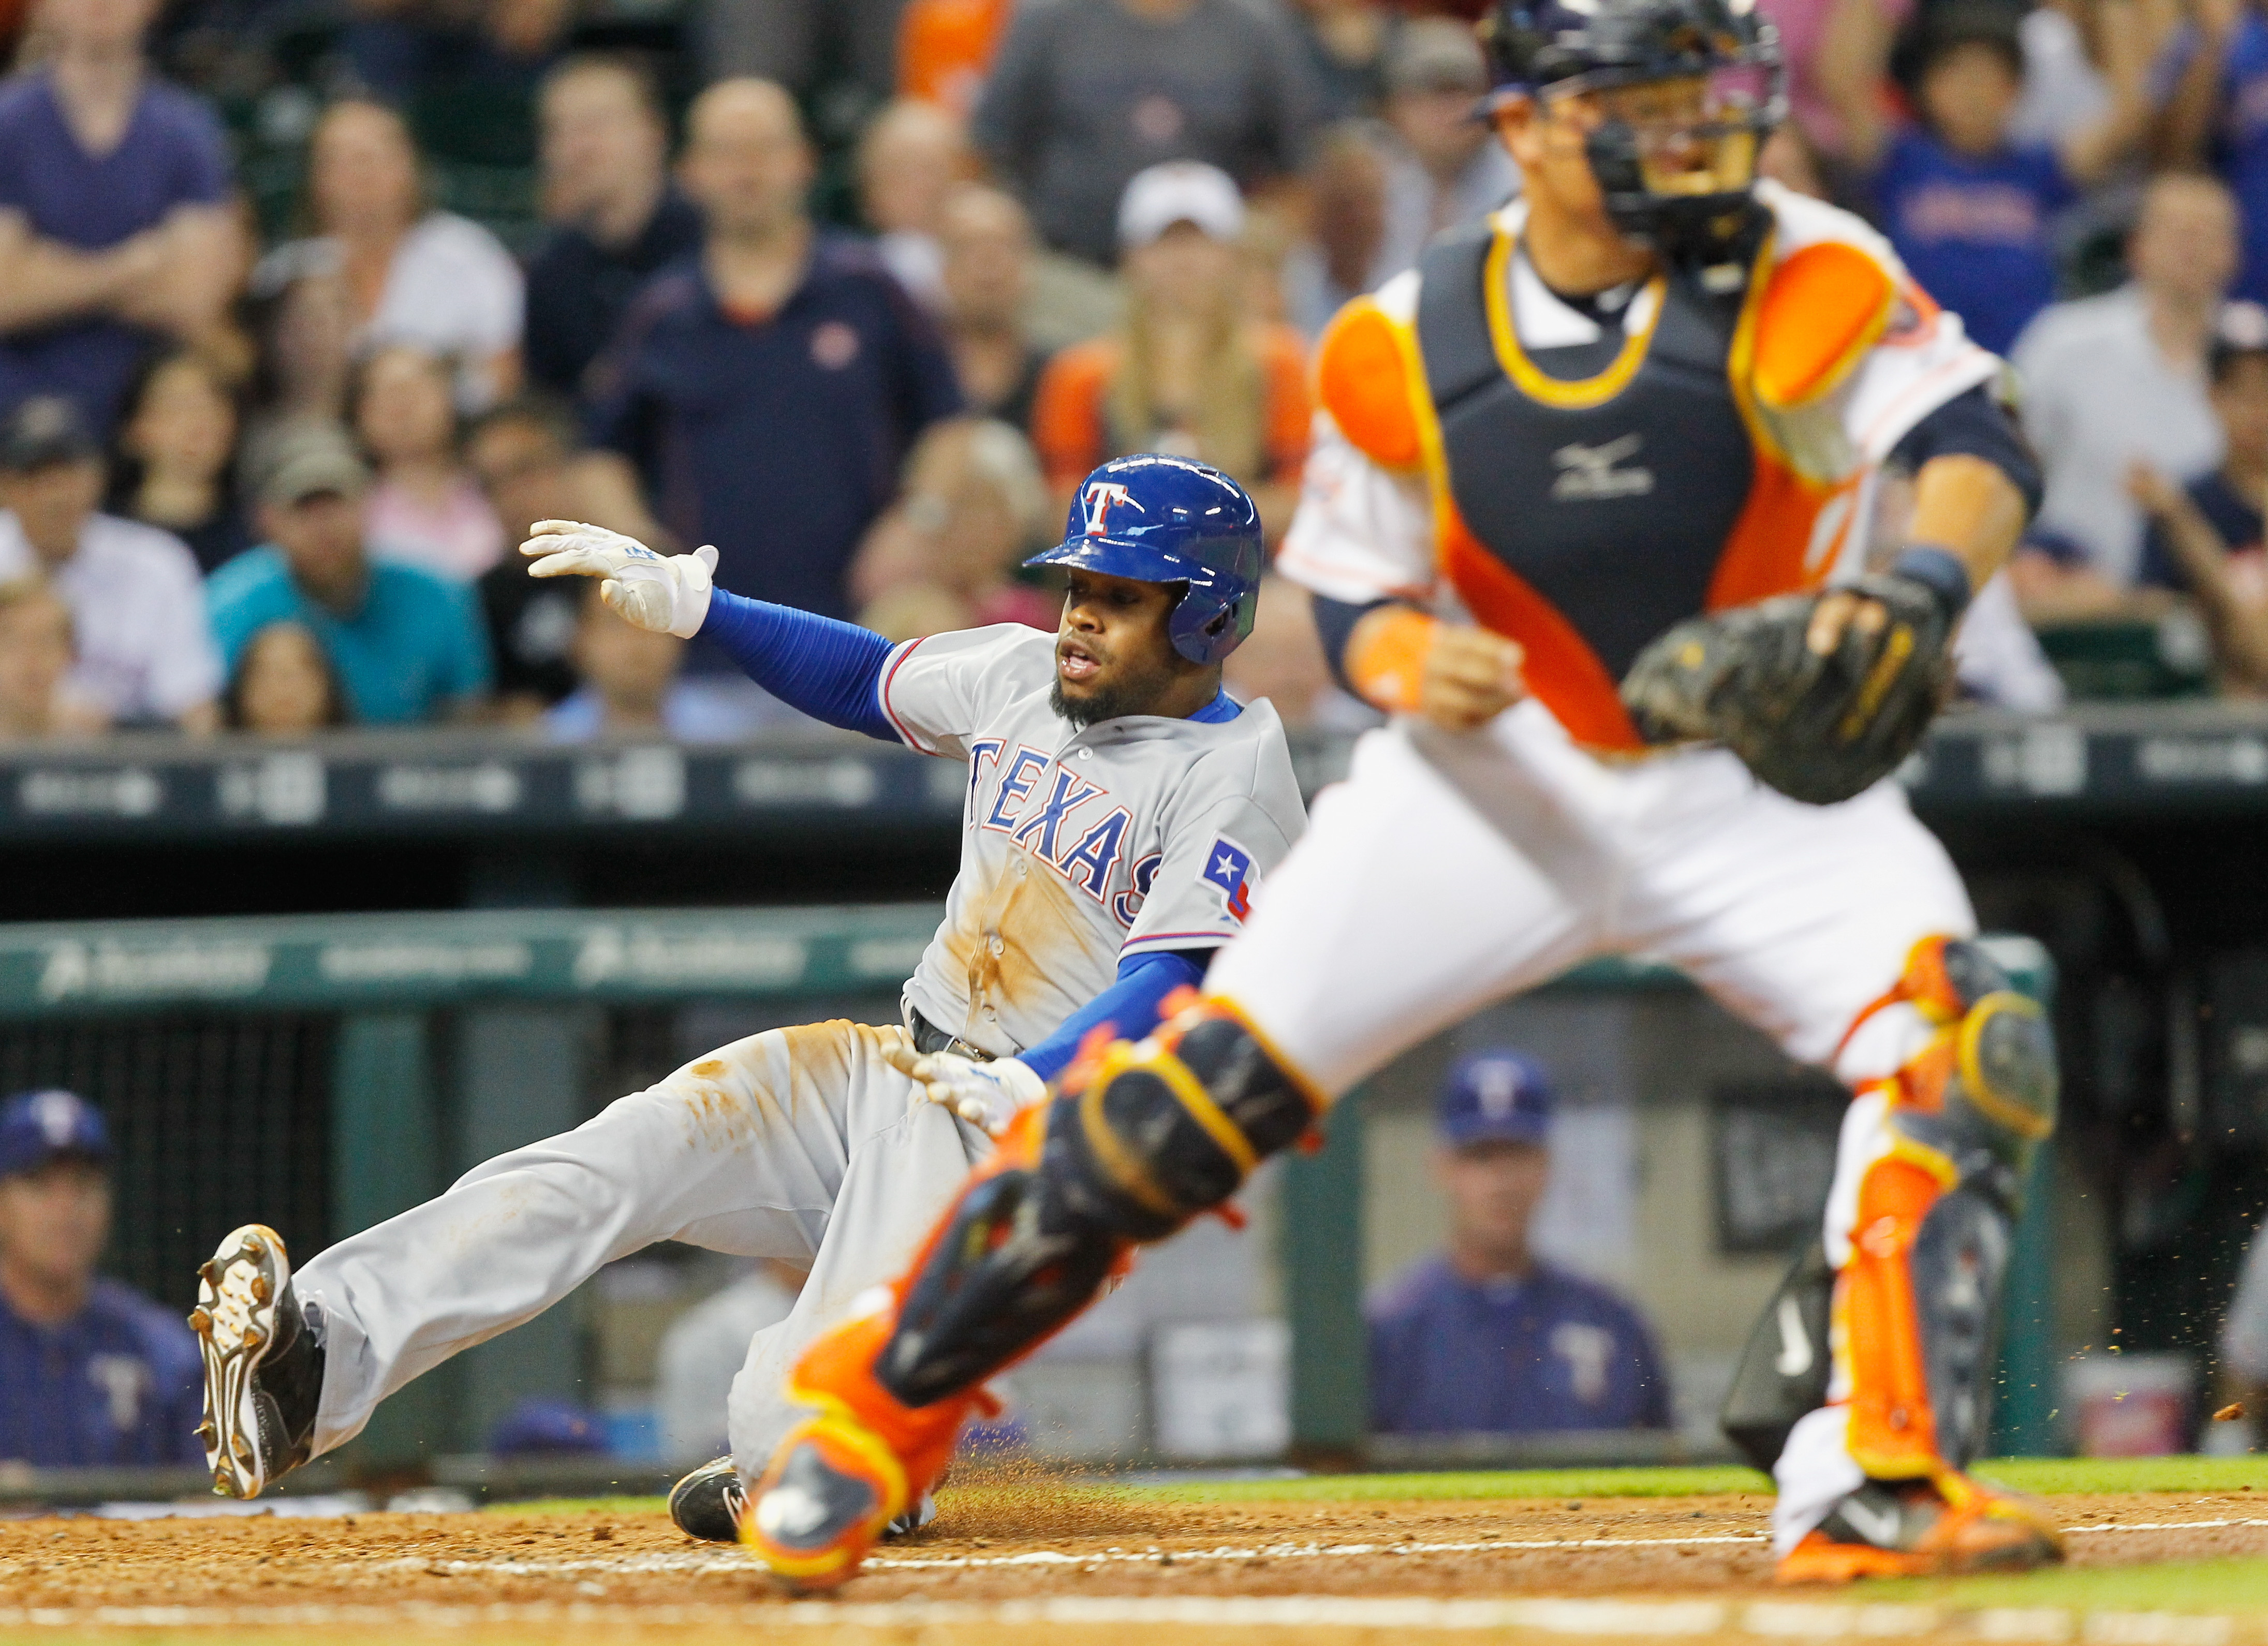 Texas Rangers'  Delino DeShields Jr. (7) scores on a single by Jake Smolinski in the eighth inning as Houston Astros catcher Hank Conger (16) awaits the throw in a baseball game Monday May 4, 2015, in Houston. (AP Photo/Bob Levey)